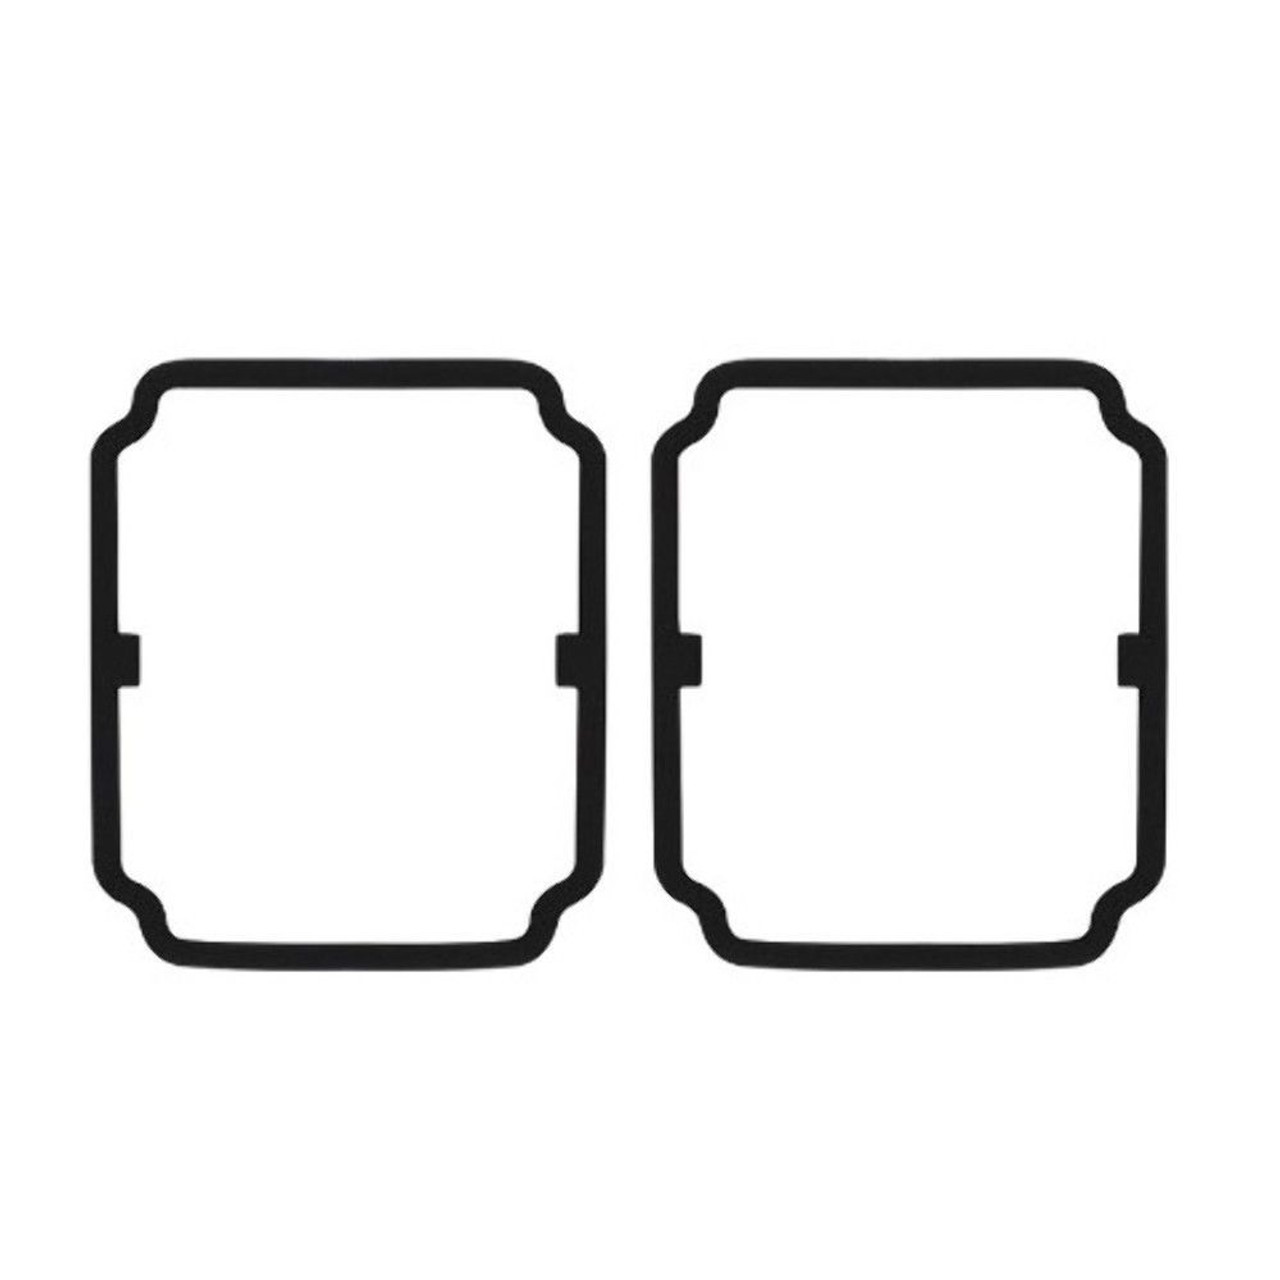 1973-87 Chevy & GMC Truck Tail Light Lens Gaskets, Pair